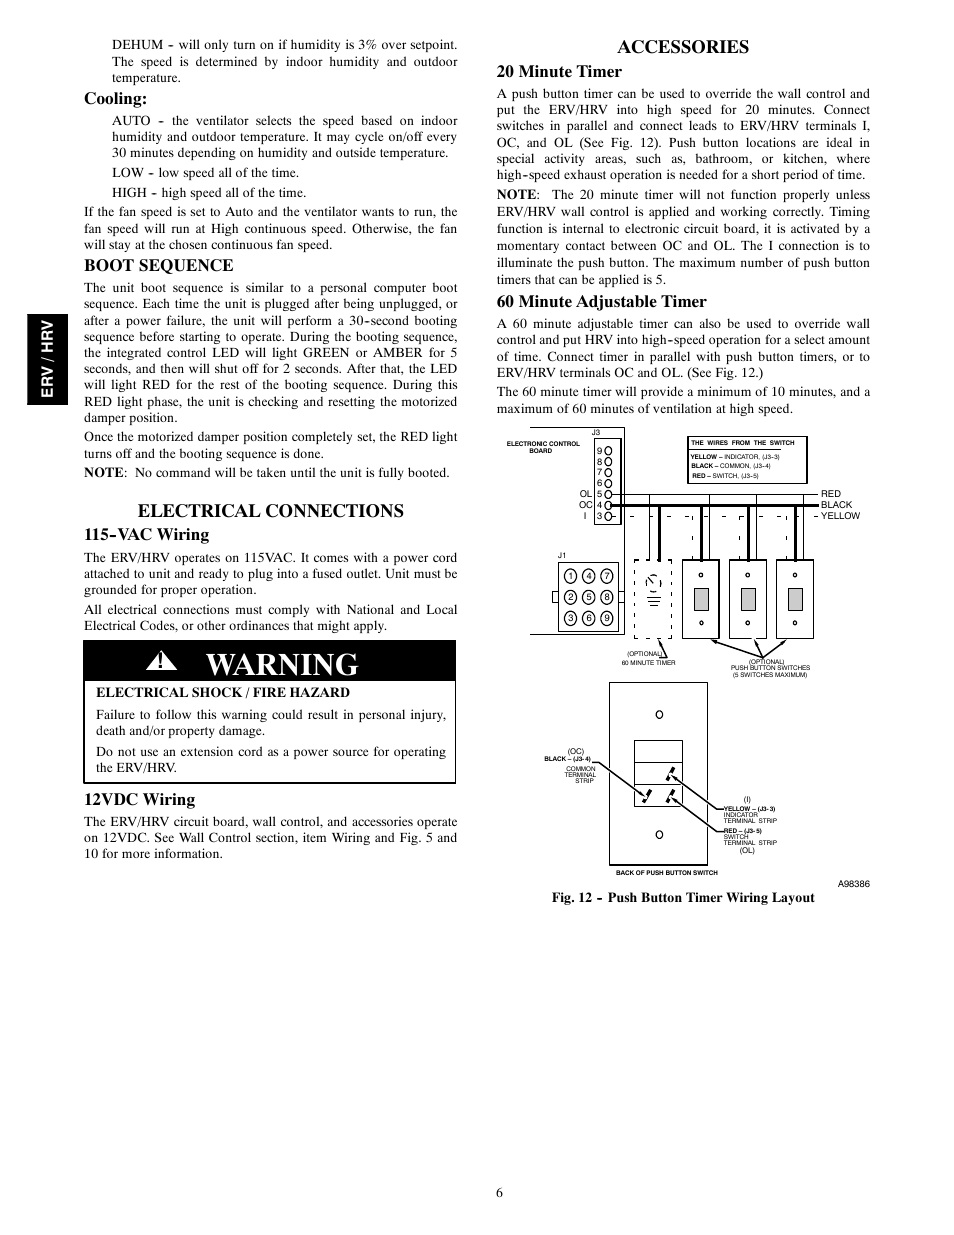 Warning Electrical Connections Accessories Bryant Energy Heat 115 Vac Plug Wiring Recovery Ventilator Ervbbsva1100 User Manual Page 6 13